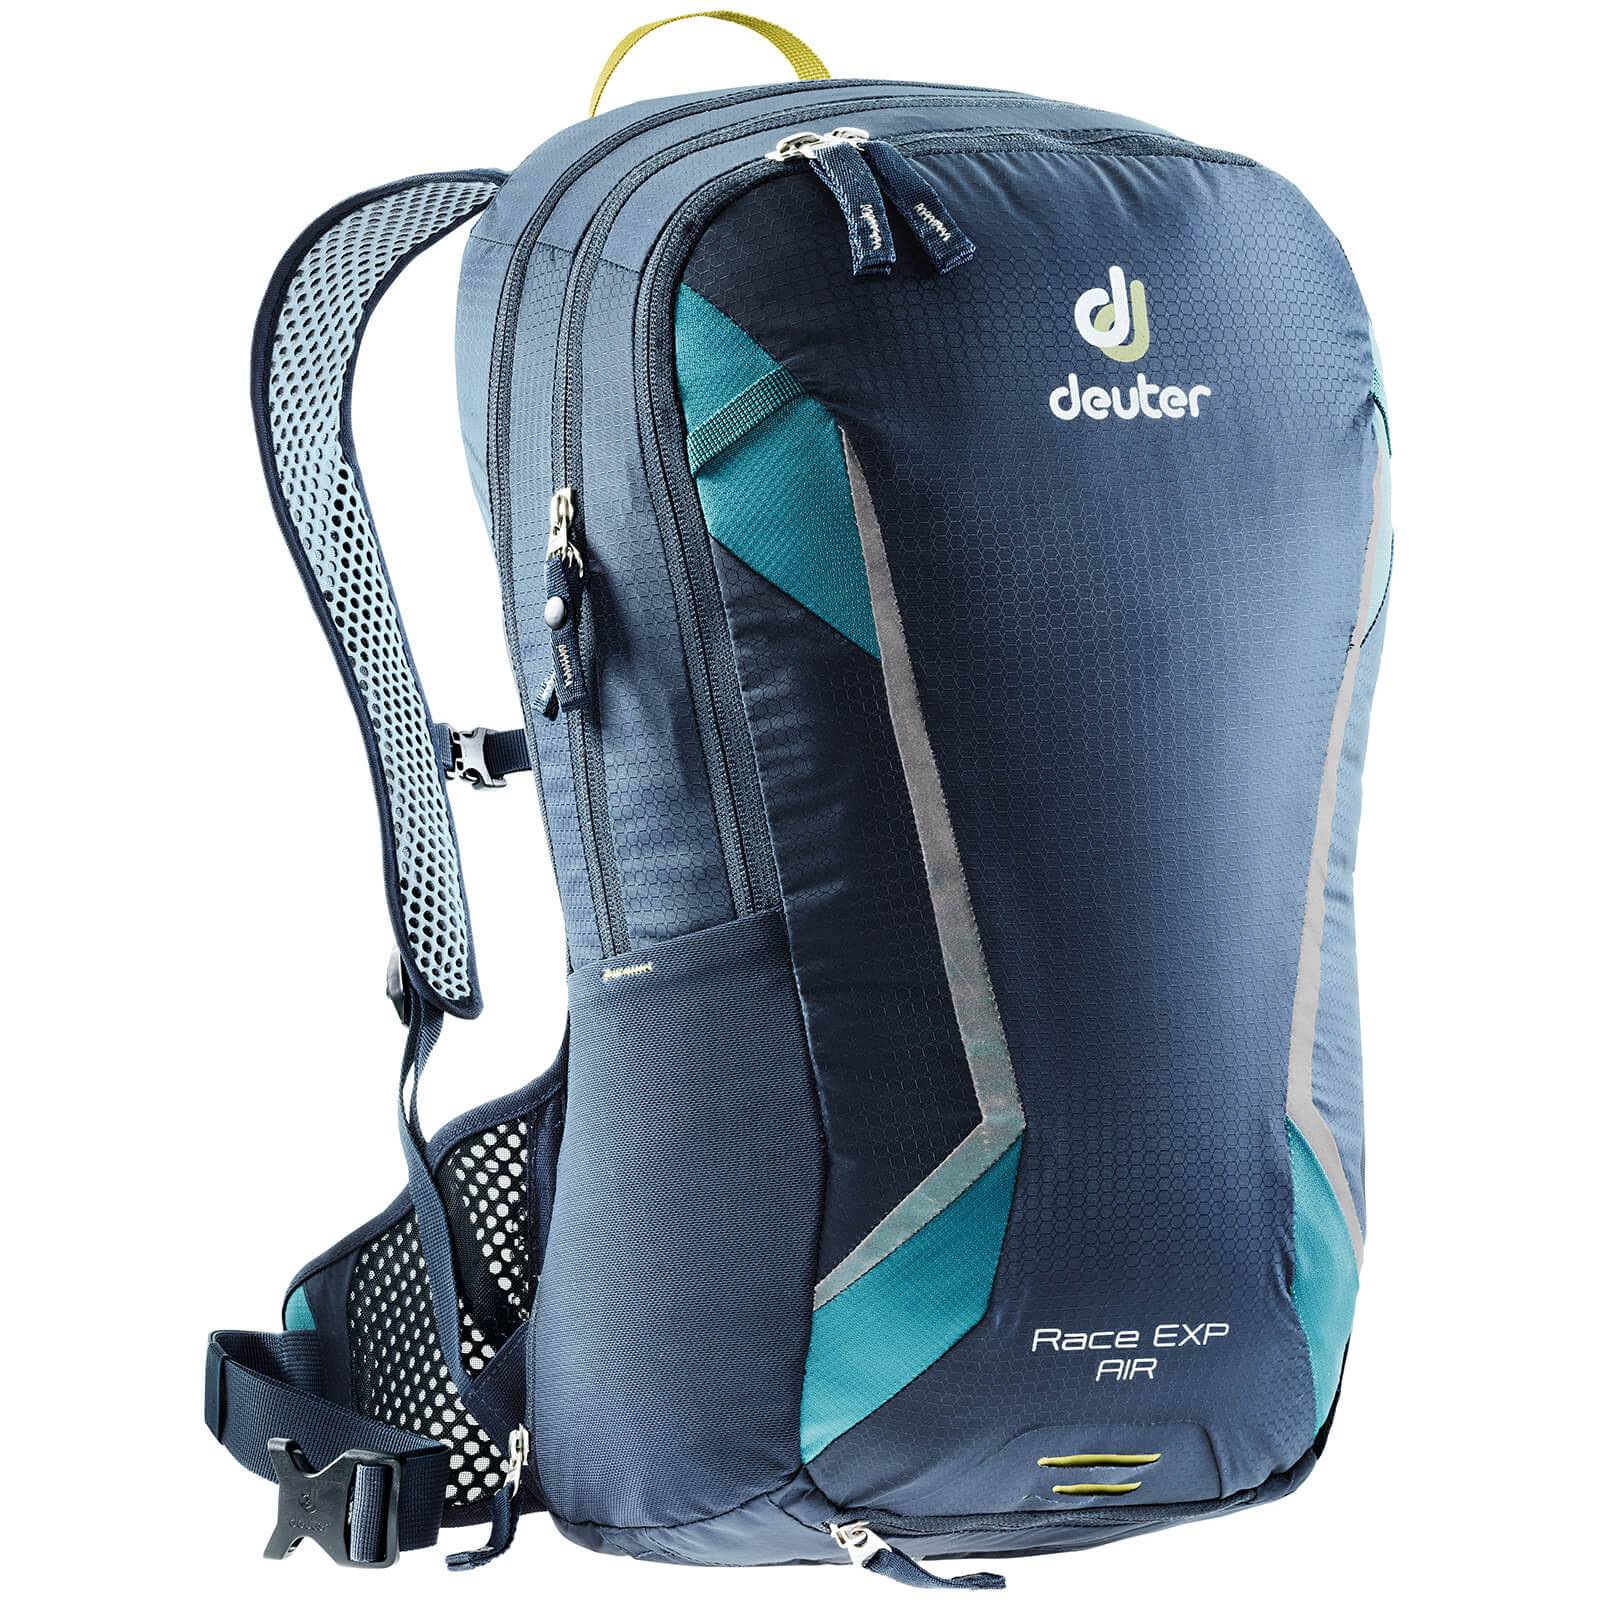 Deuter Race Exp Air 17L Backpack - Navy/Denim